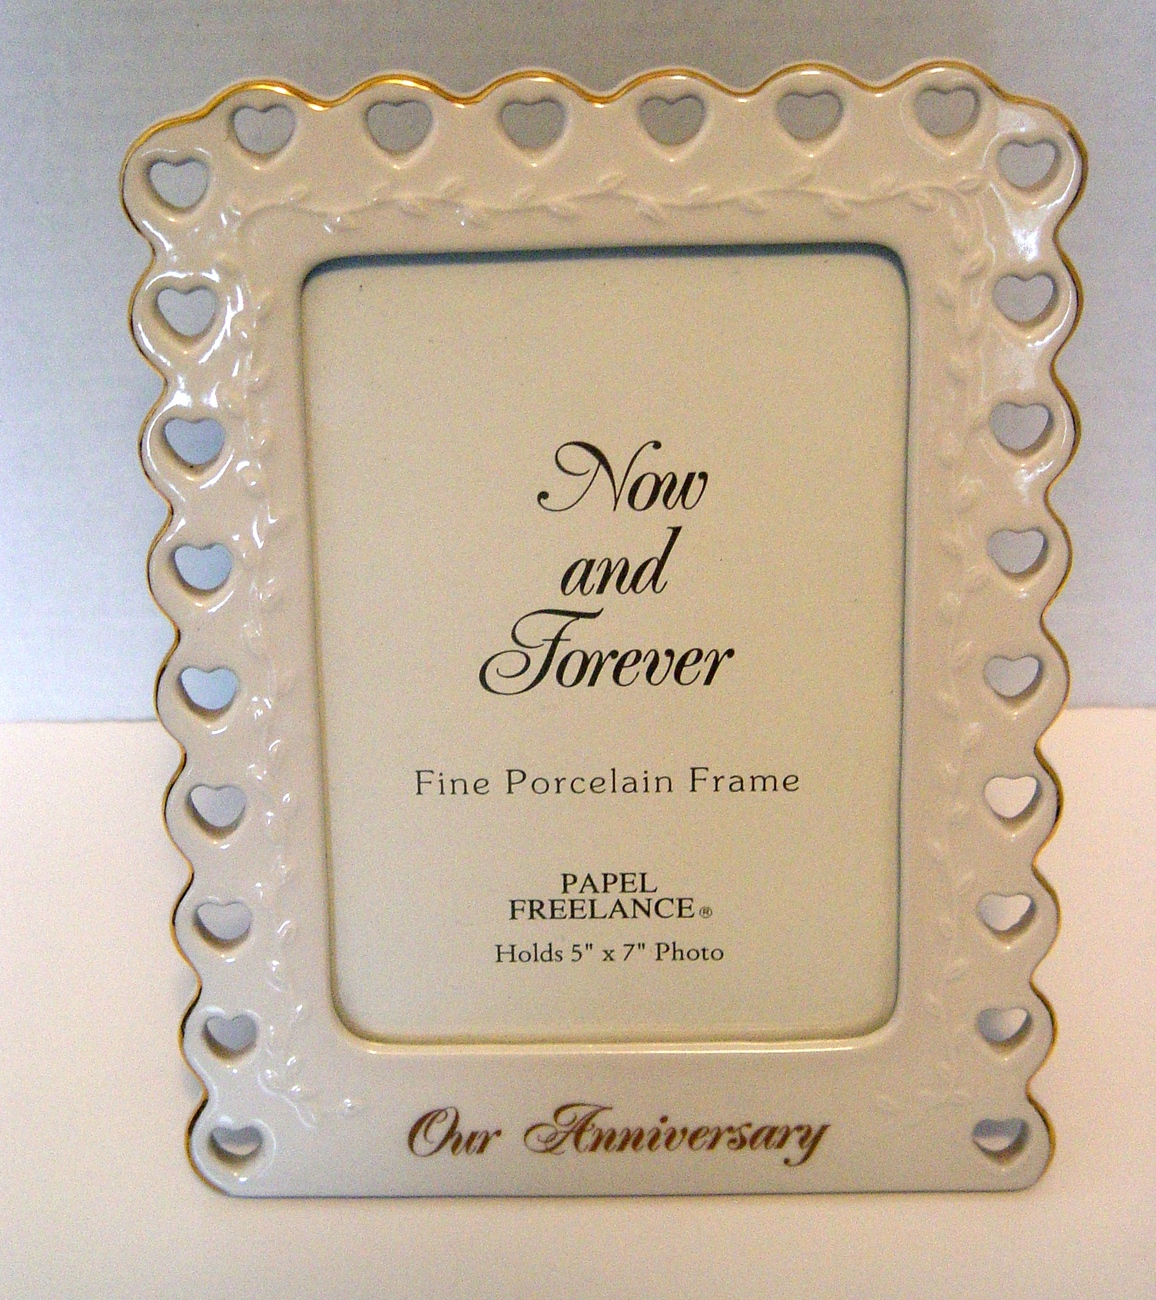 Our  Anniversary  Porcelain Frame by Papel (5x7)